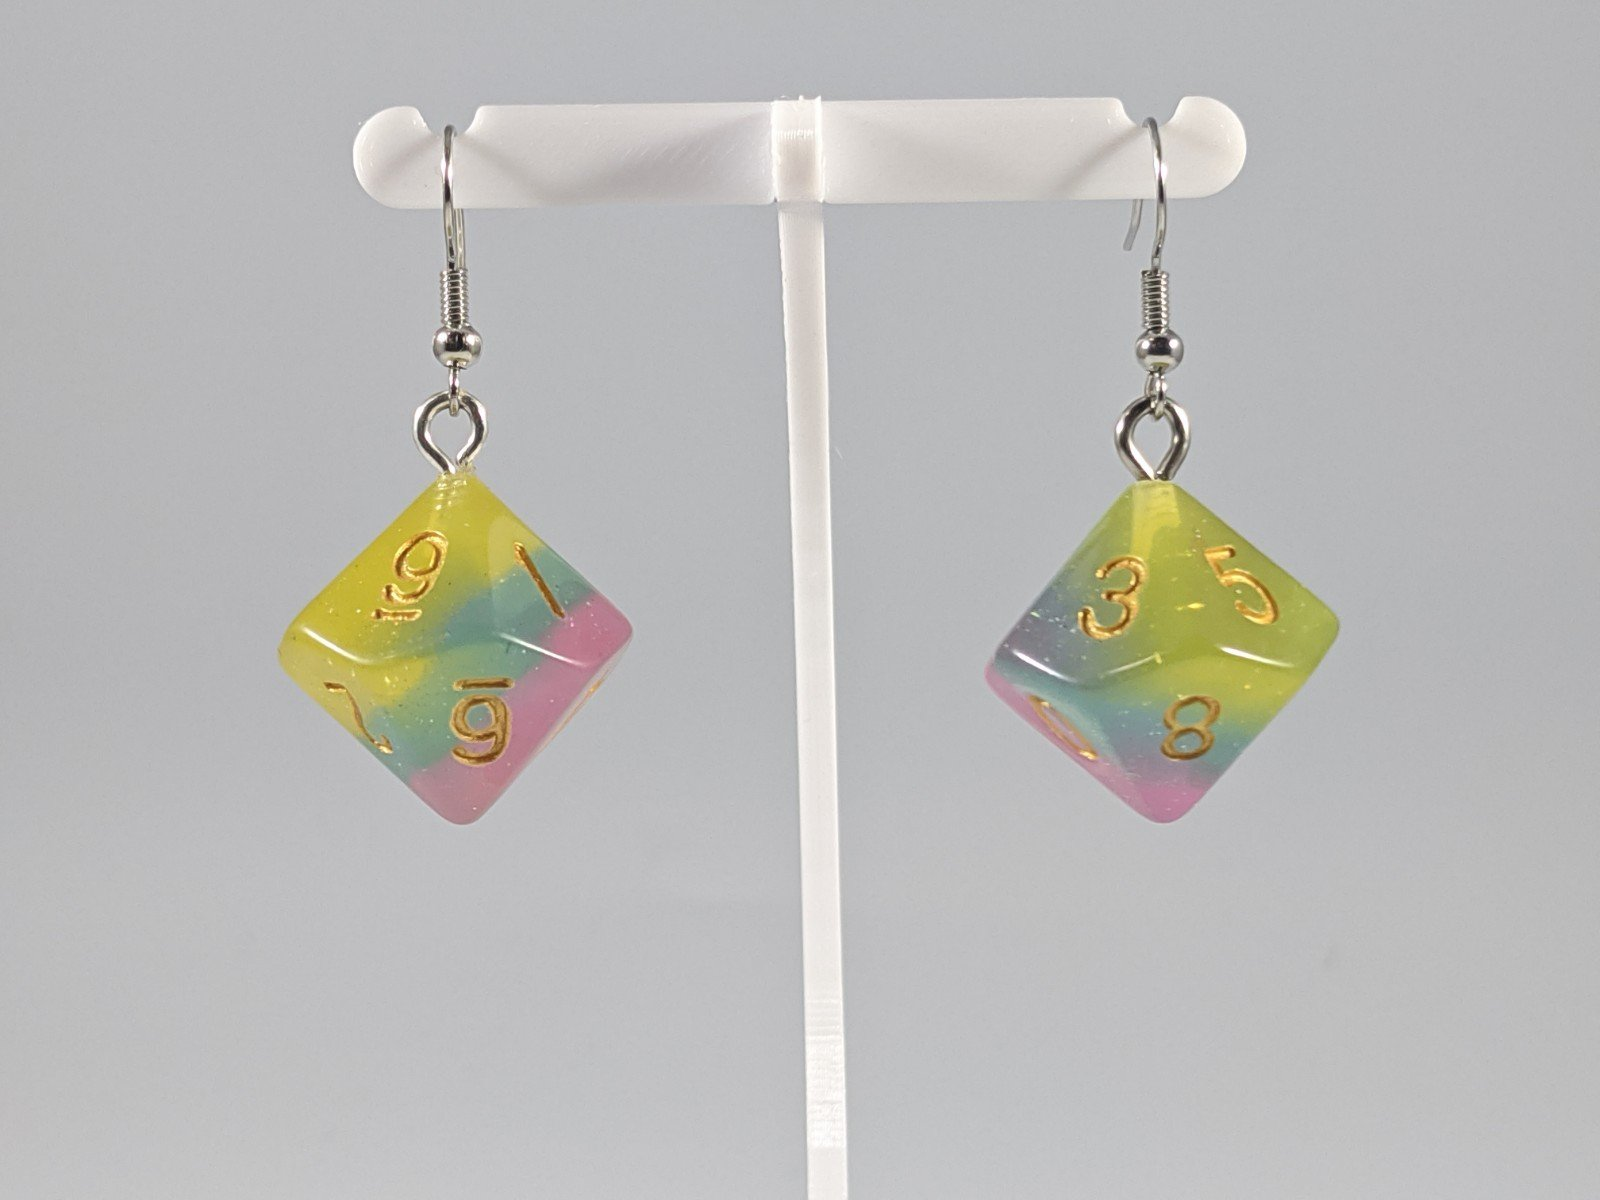 Dice Earrings: D10 (1's) - Cotton Candy